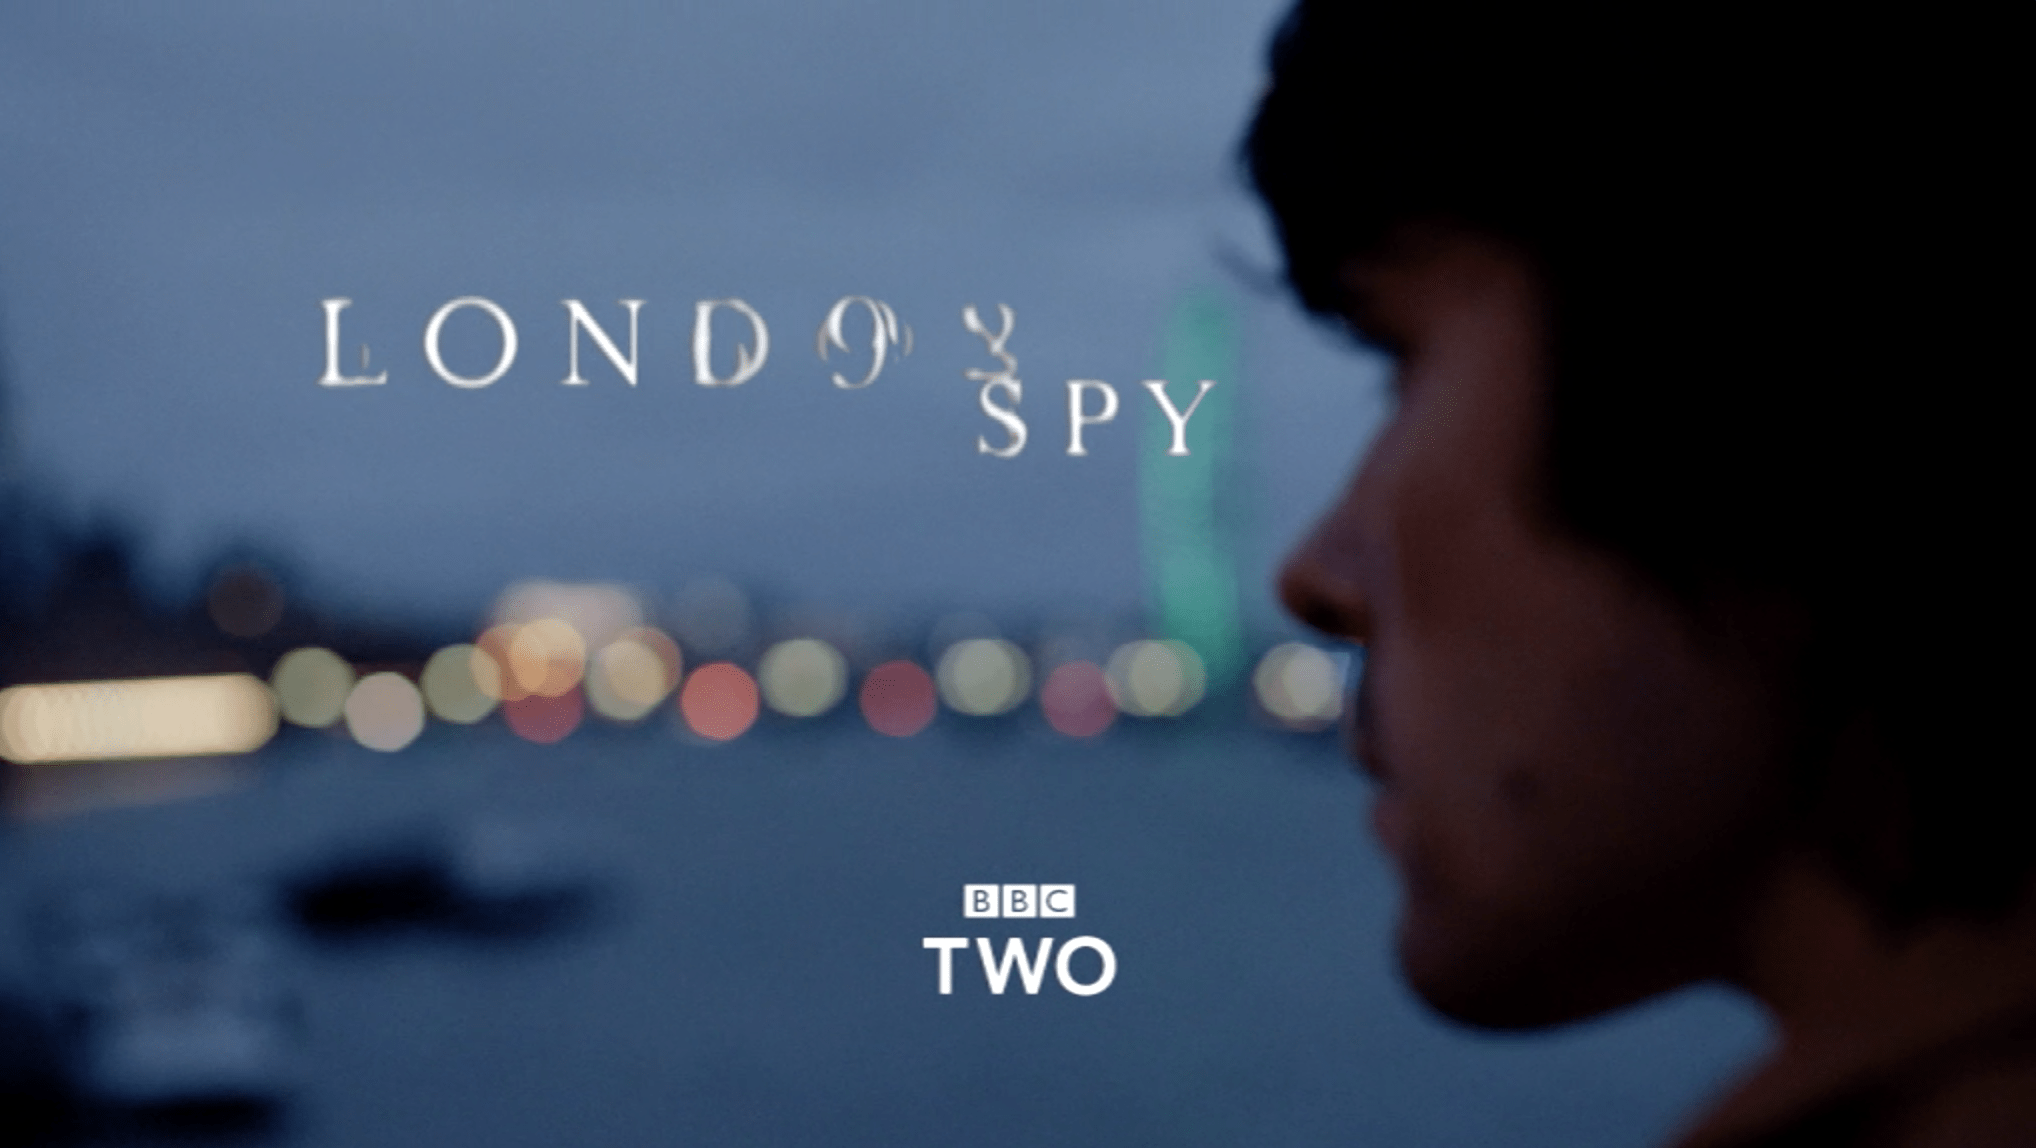 LONDON SPY BBC CREATIVE